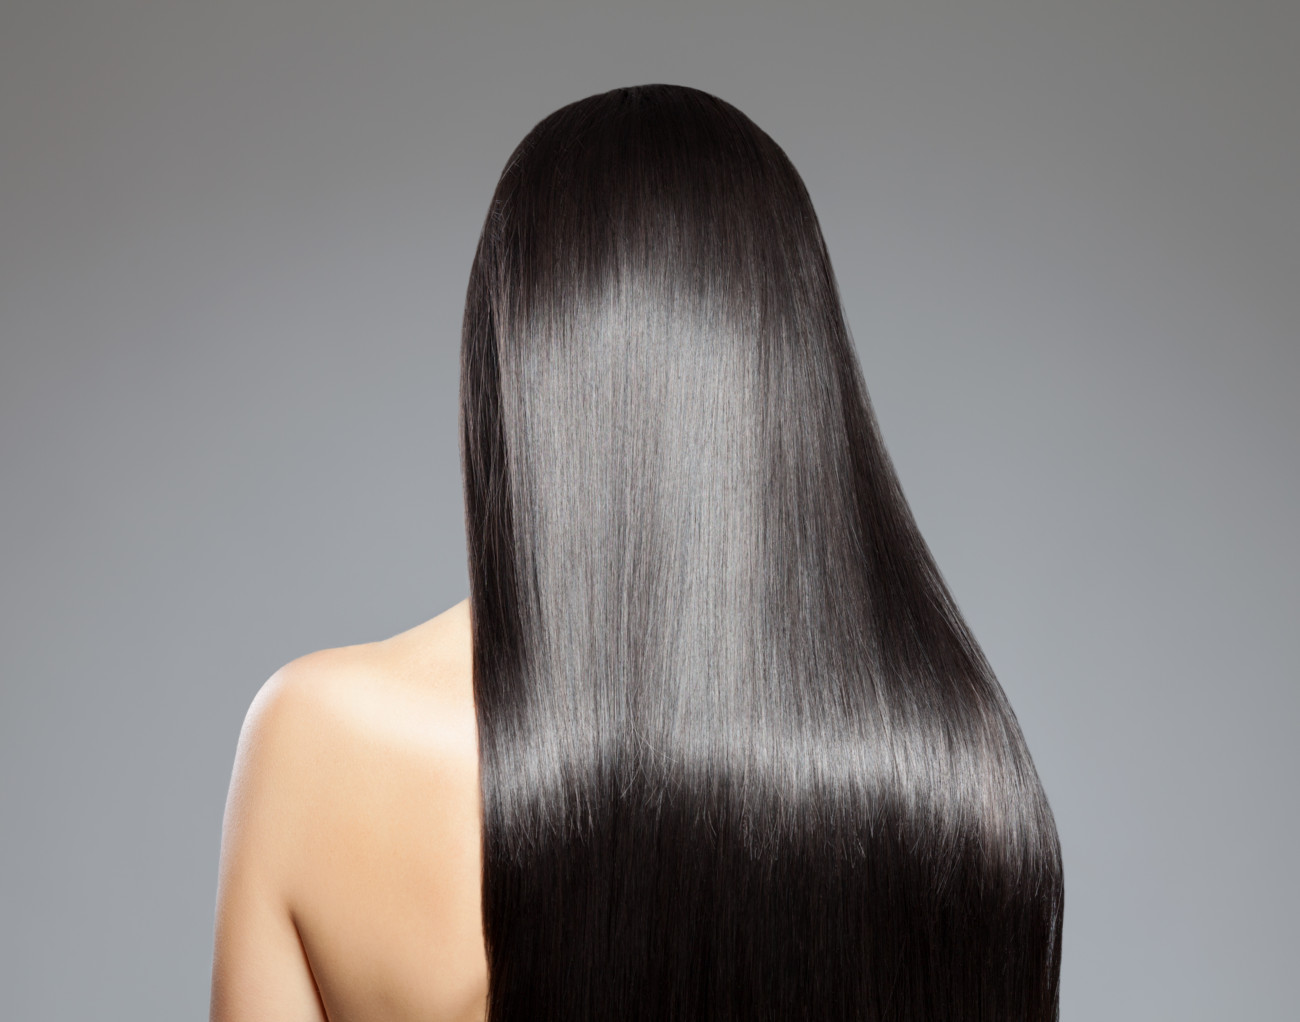 How To Grow Long Healthy Hair In The Winter The Natural Way 1300x1022 1